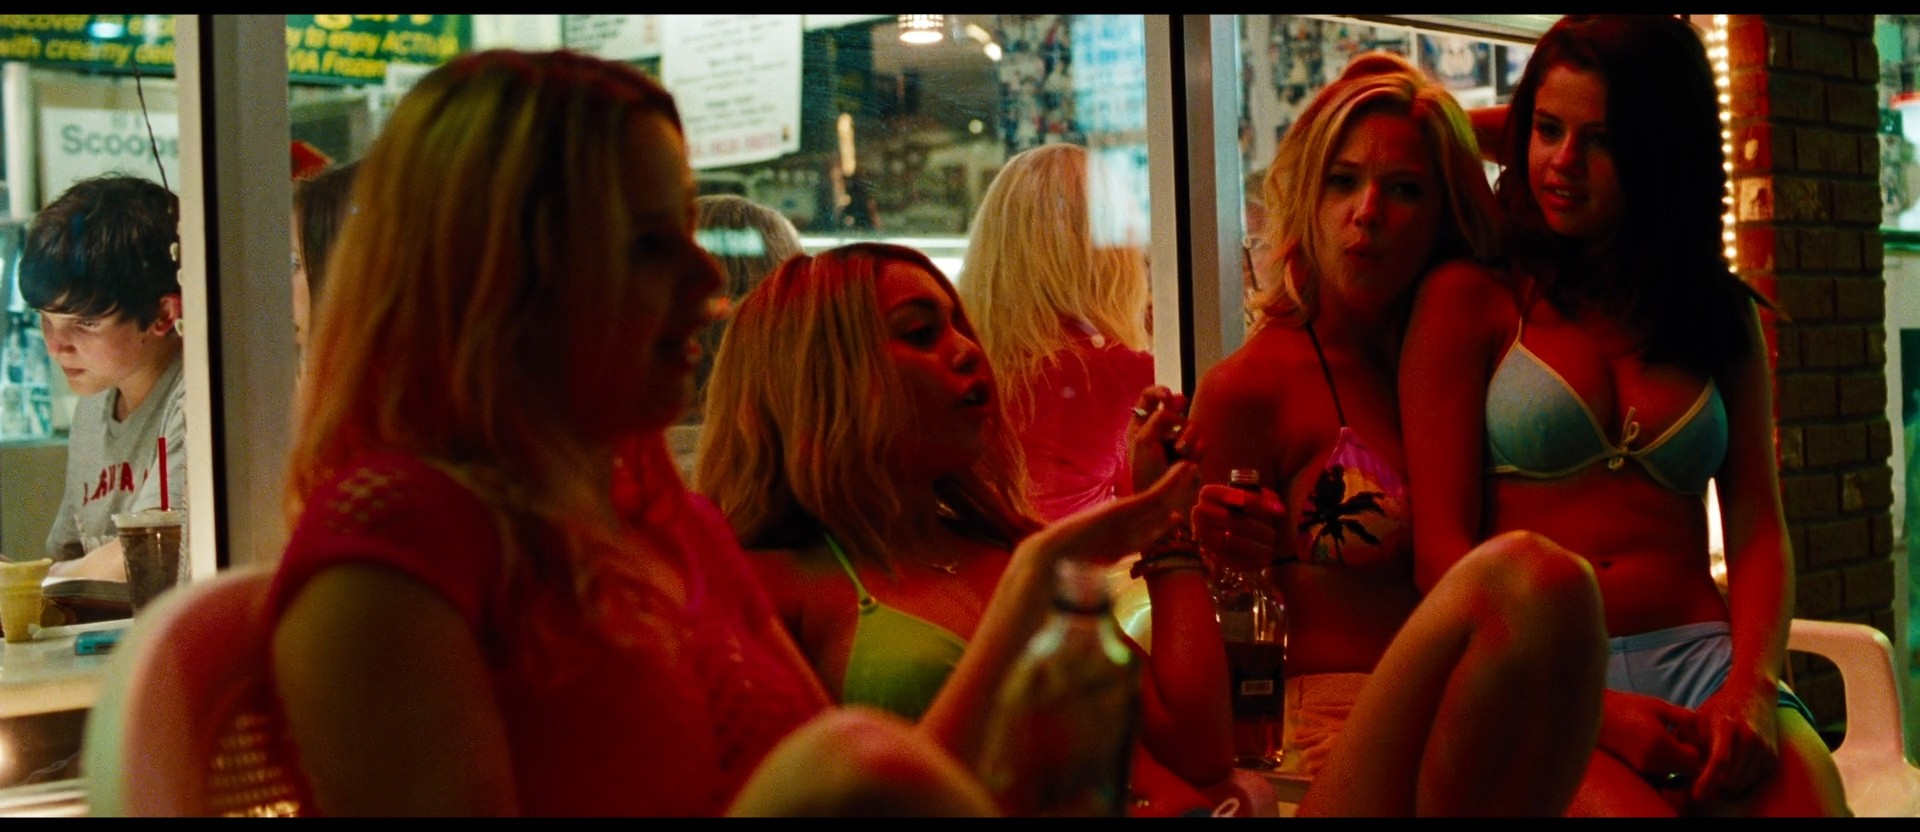 Ashley Benson nude skinny dipping others nude too - Spring Breakers (2012) HD 1080p BluRay (21)